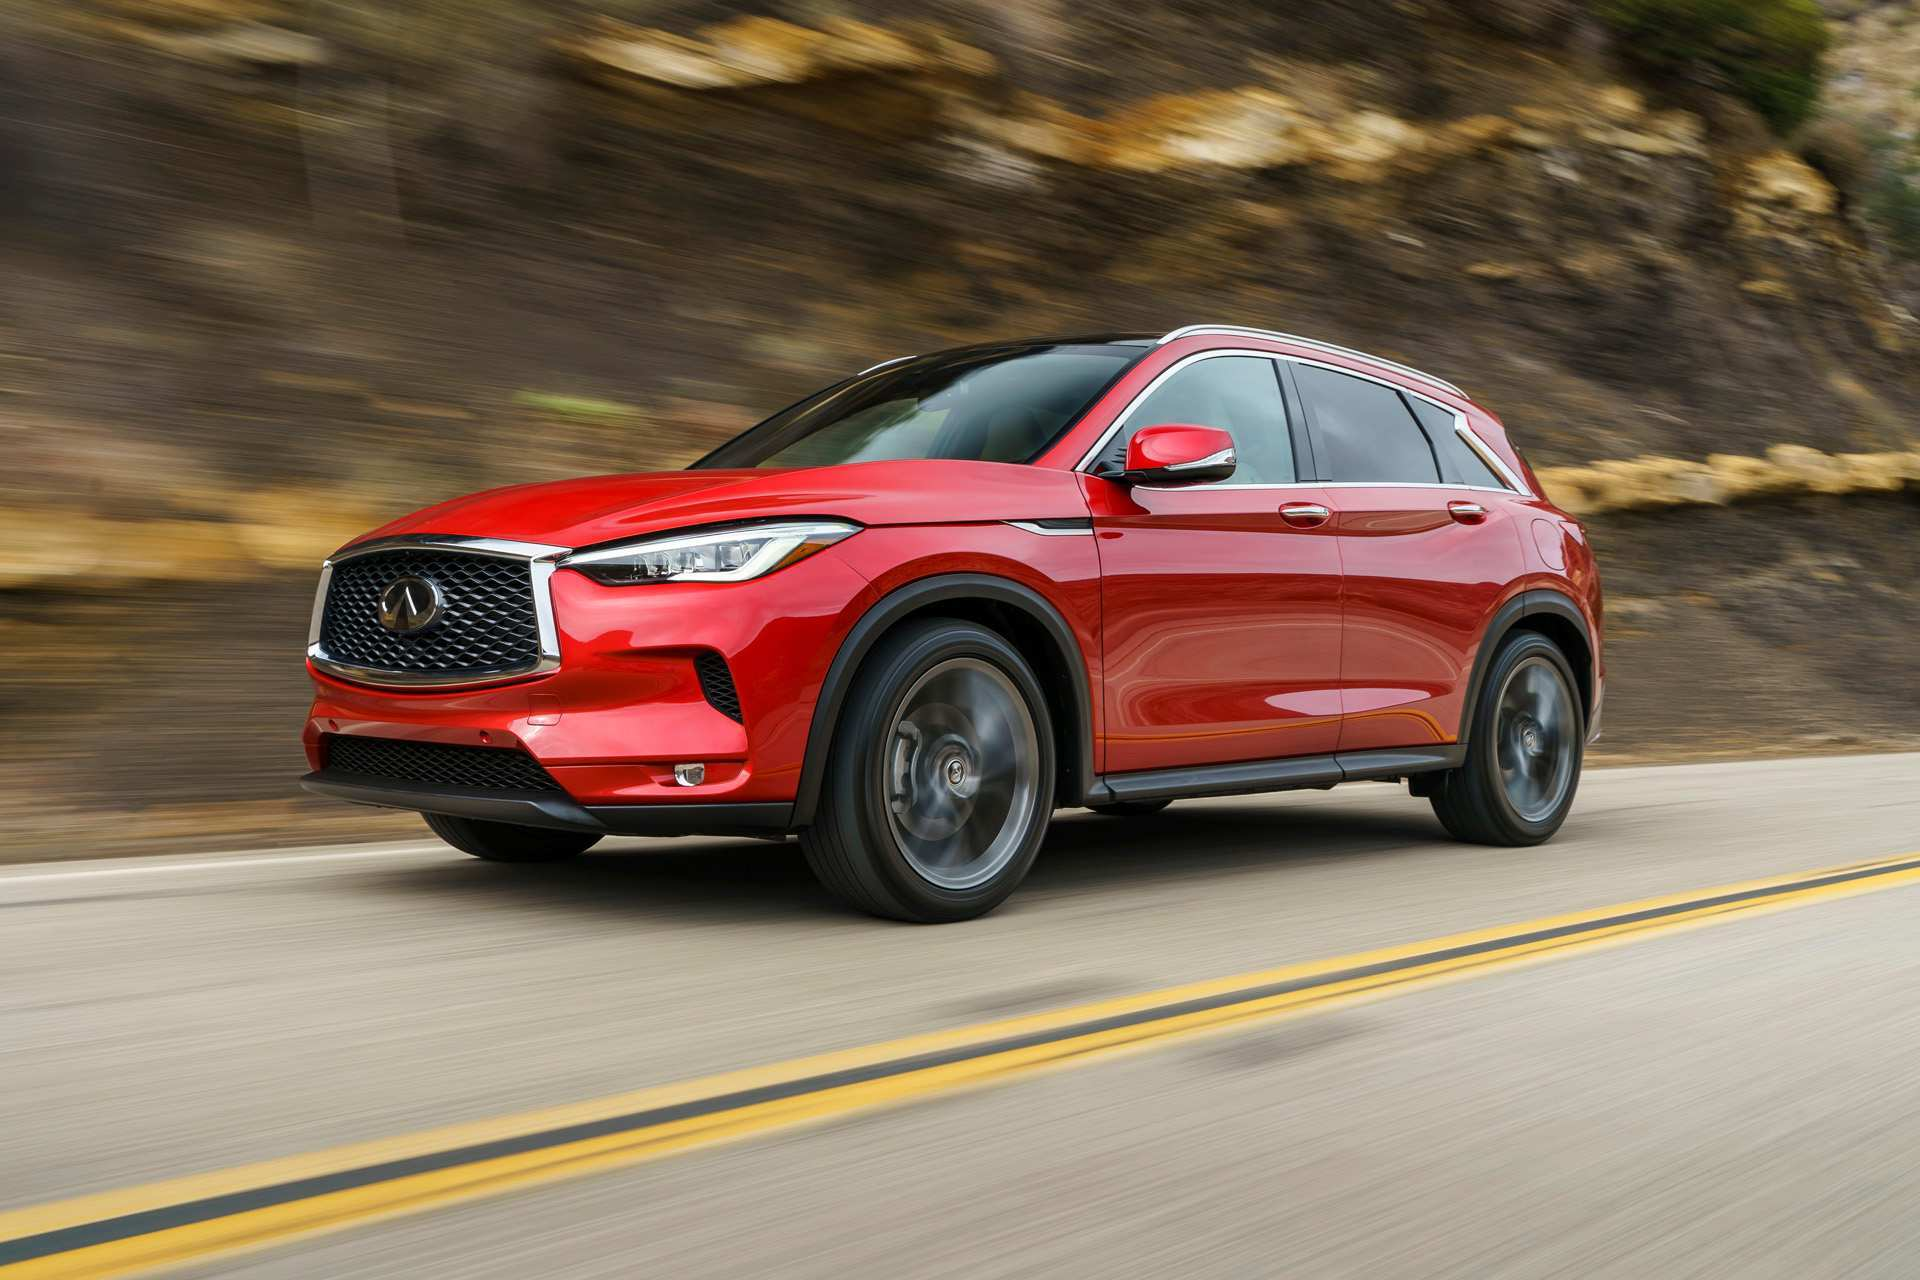 47 Gallery of 2019 Infiniti Qx50 Engine Specs Speed Test with 2019 Infiniti Qx50 Engine Specs